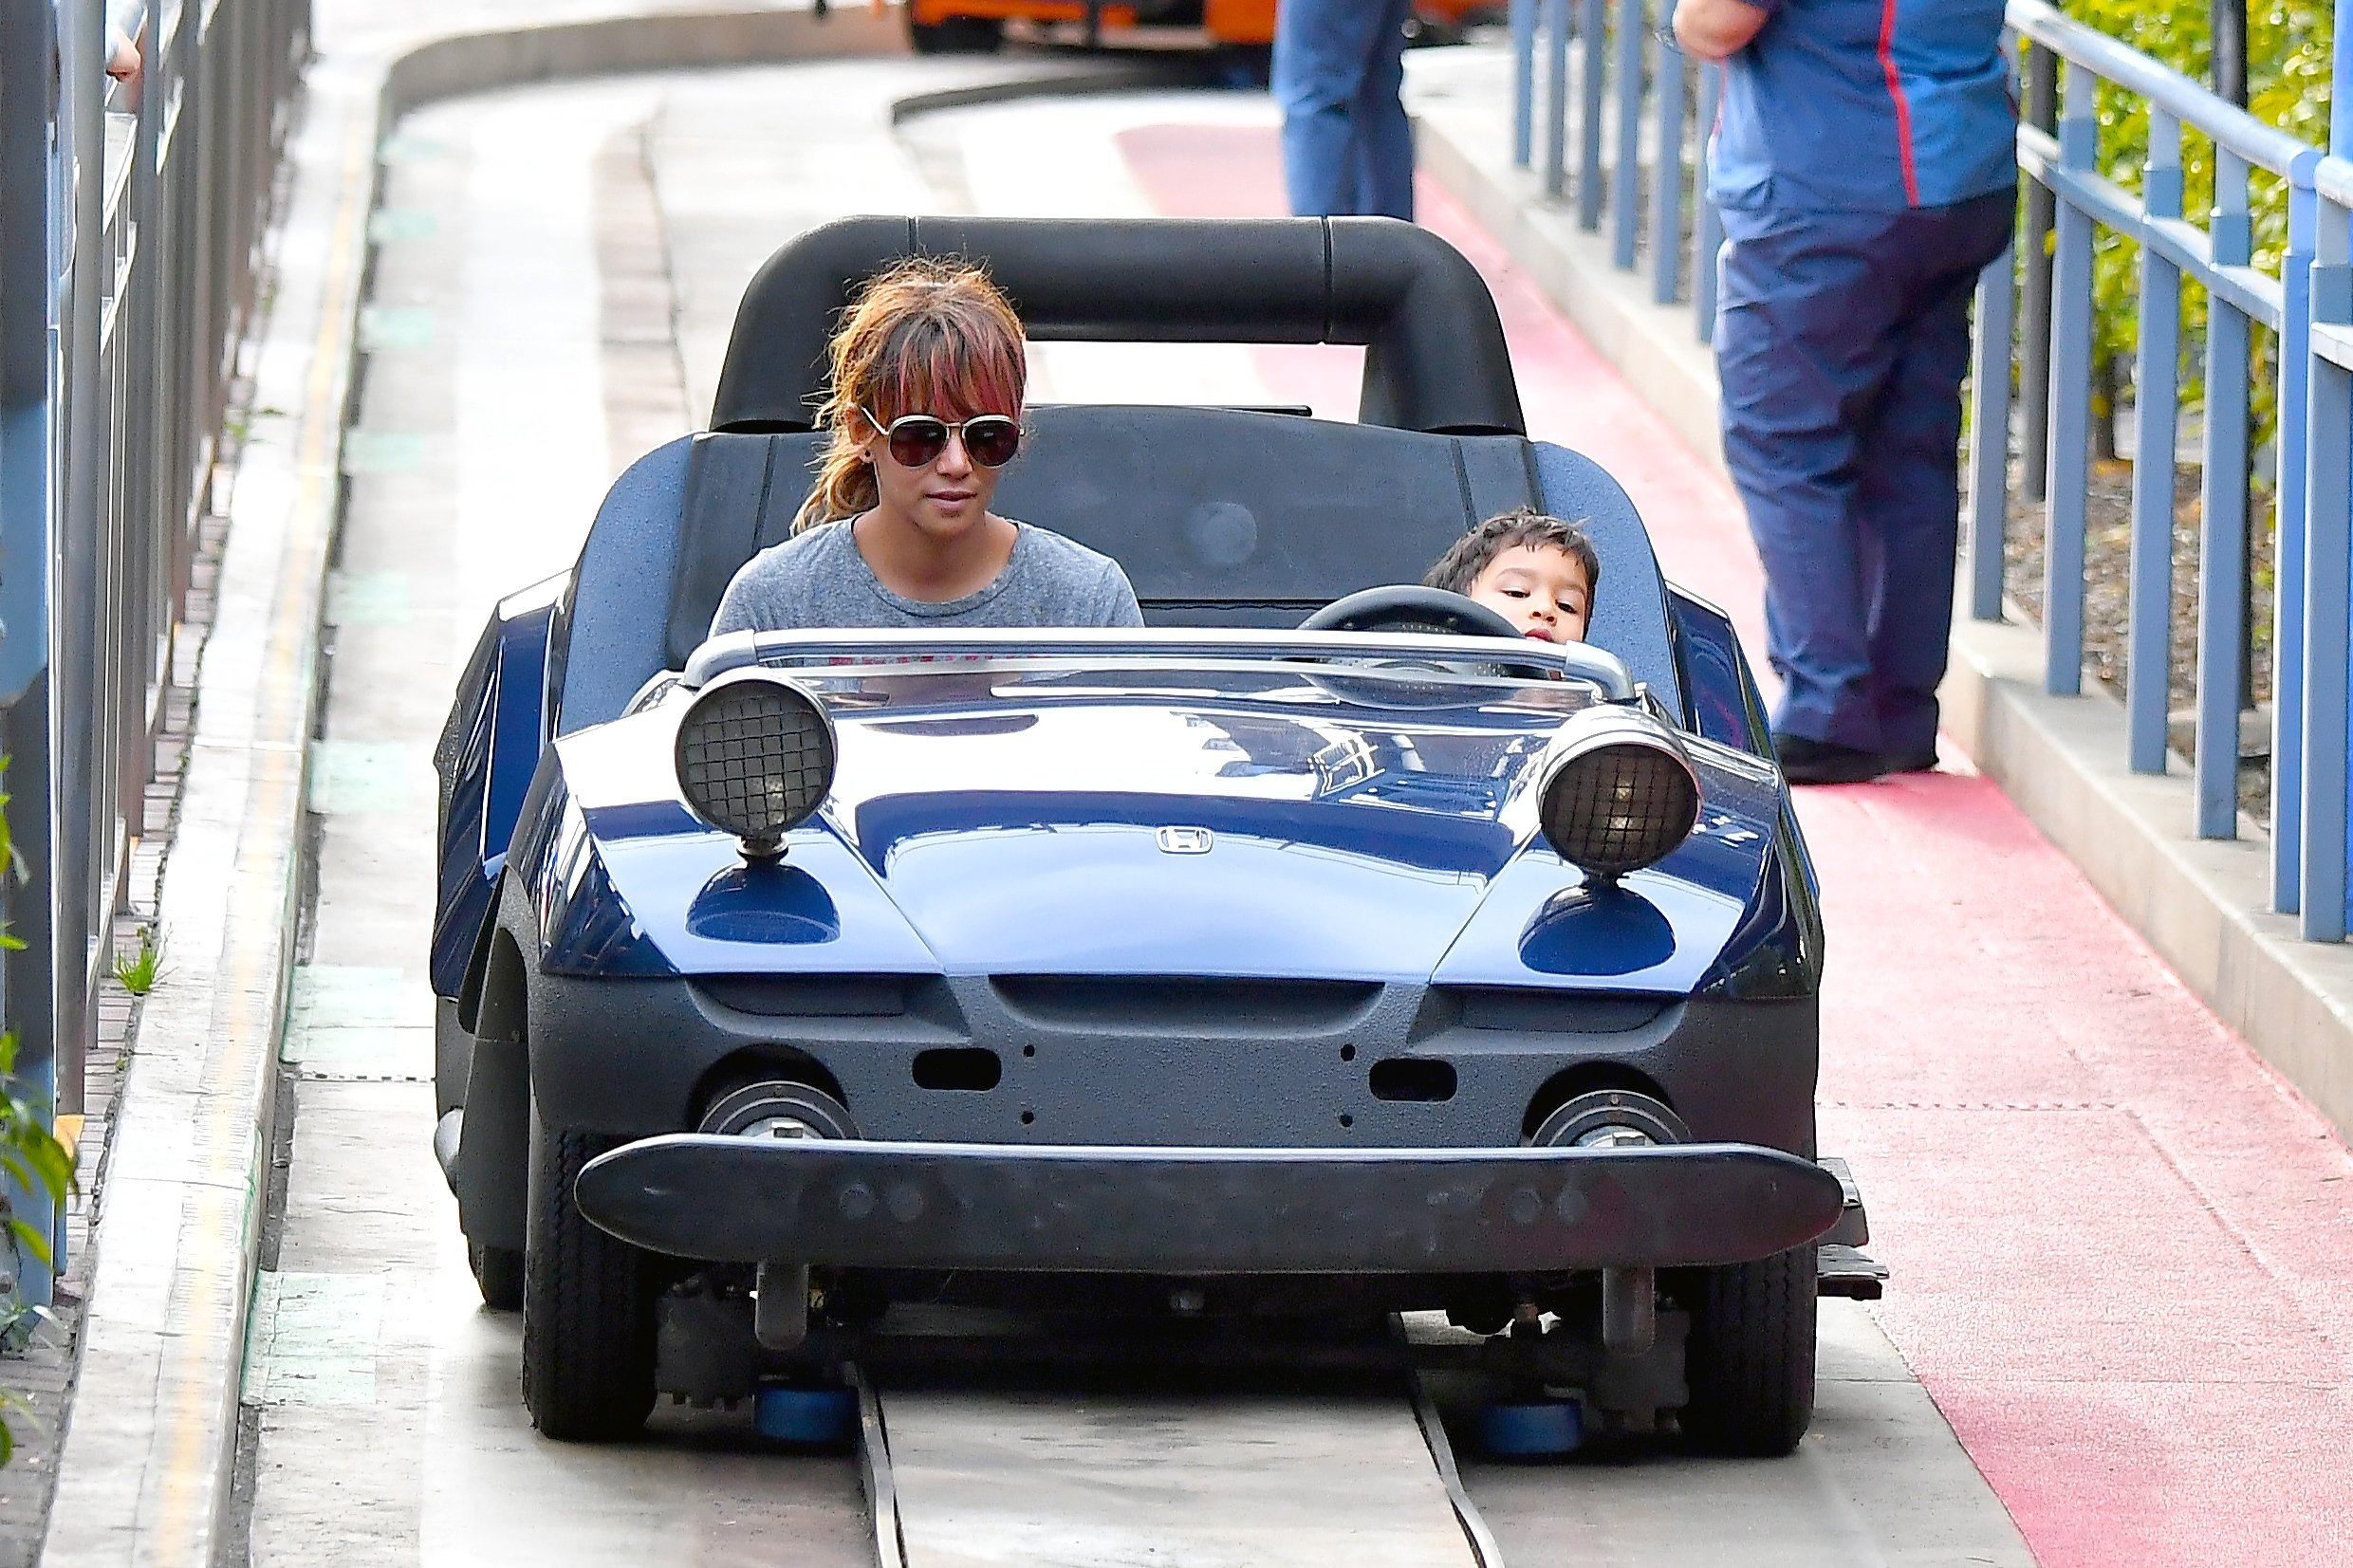 ** PREMIUM EXCLUSIVE RATES APPLY ** Halle Berry lets her son Maceo take the wheel on the Autopia ride at Disneyland as she enjoys a day with her kids at the happiest place on earth. Halle was seen enjoy many of the park's attractions at disneyland including rides in fantasyland, and Tomorrowland. Maceo was seen really enjoying a ride on the Autopia ride, steering them through the ride. Nahla was seen riding alone and spending times with friends that also came along for the Easter Weekend trip.  Halle Sported a red dye job on her bangs and wore no make up to the theme park  ***SPECIAL INSTRUCTIONS*** Please pixelate children's faces before publication.***. 01 Apr 2018, Image: 367569137, License: Rights-managed, Restrictions: World Rights, Model Release: no, Credit line: Profimedia, Mega Agency